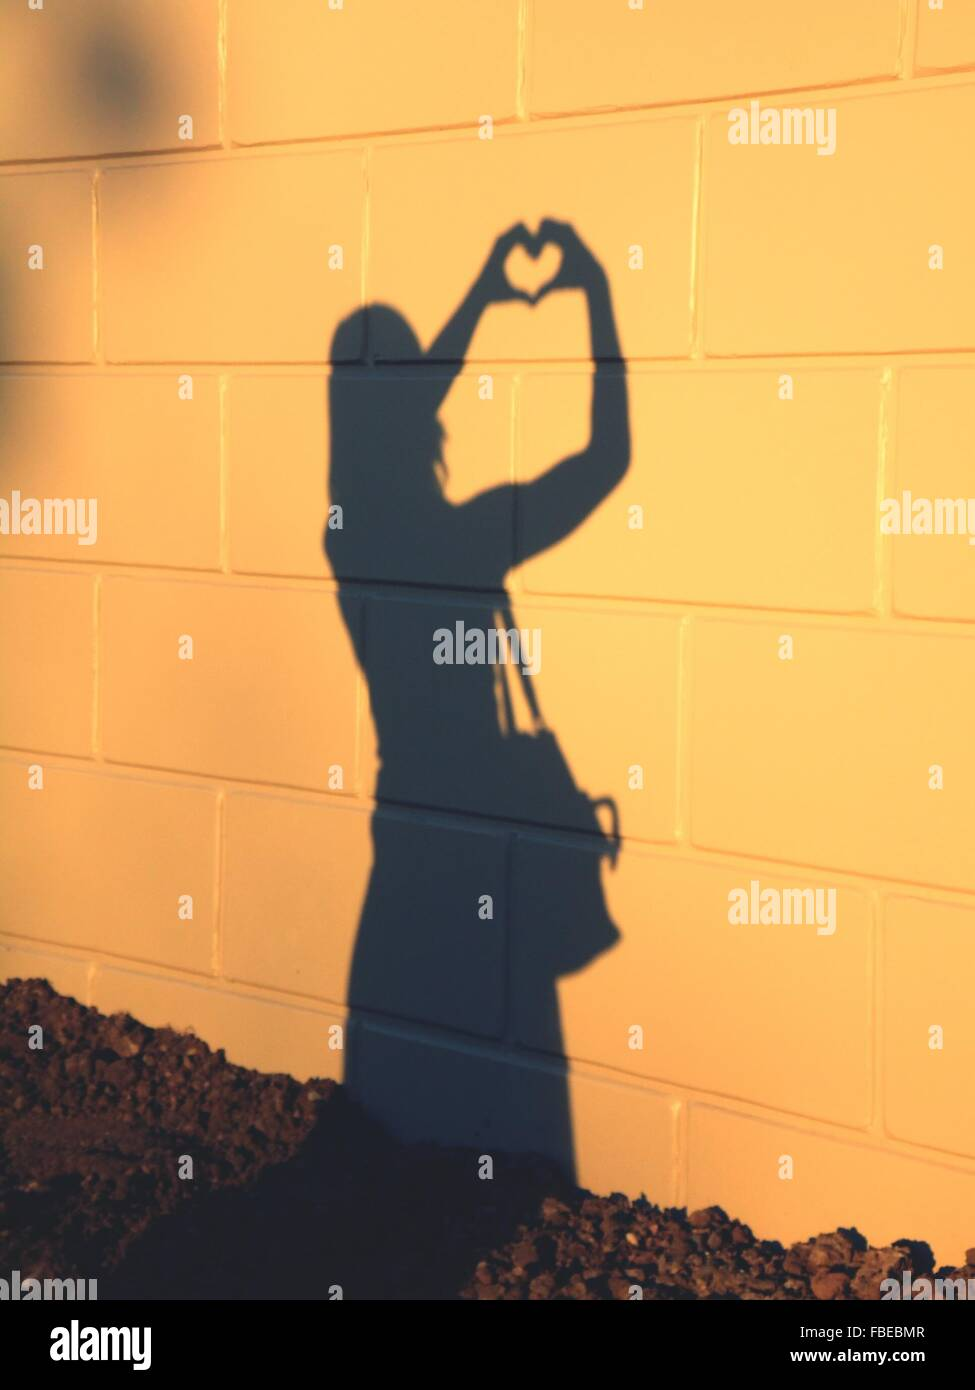 Shadow Of Woman Forming Heart On Tiled Wall - Stock Image